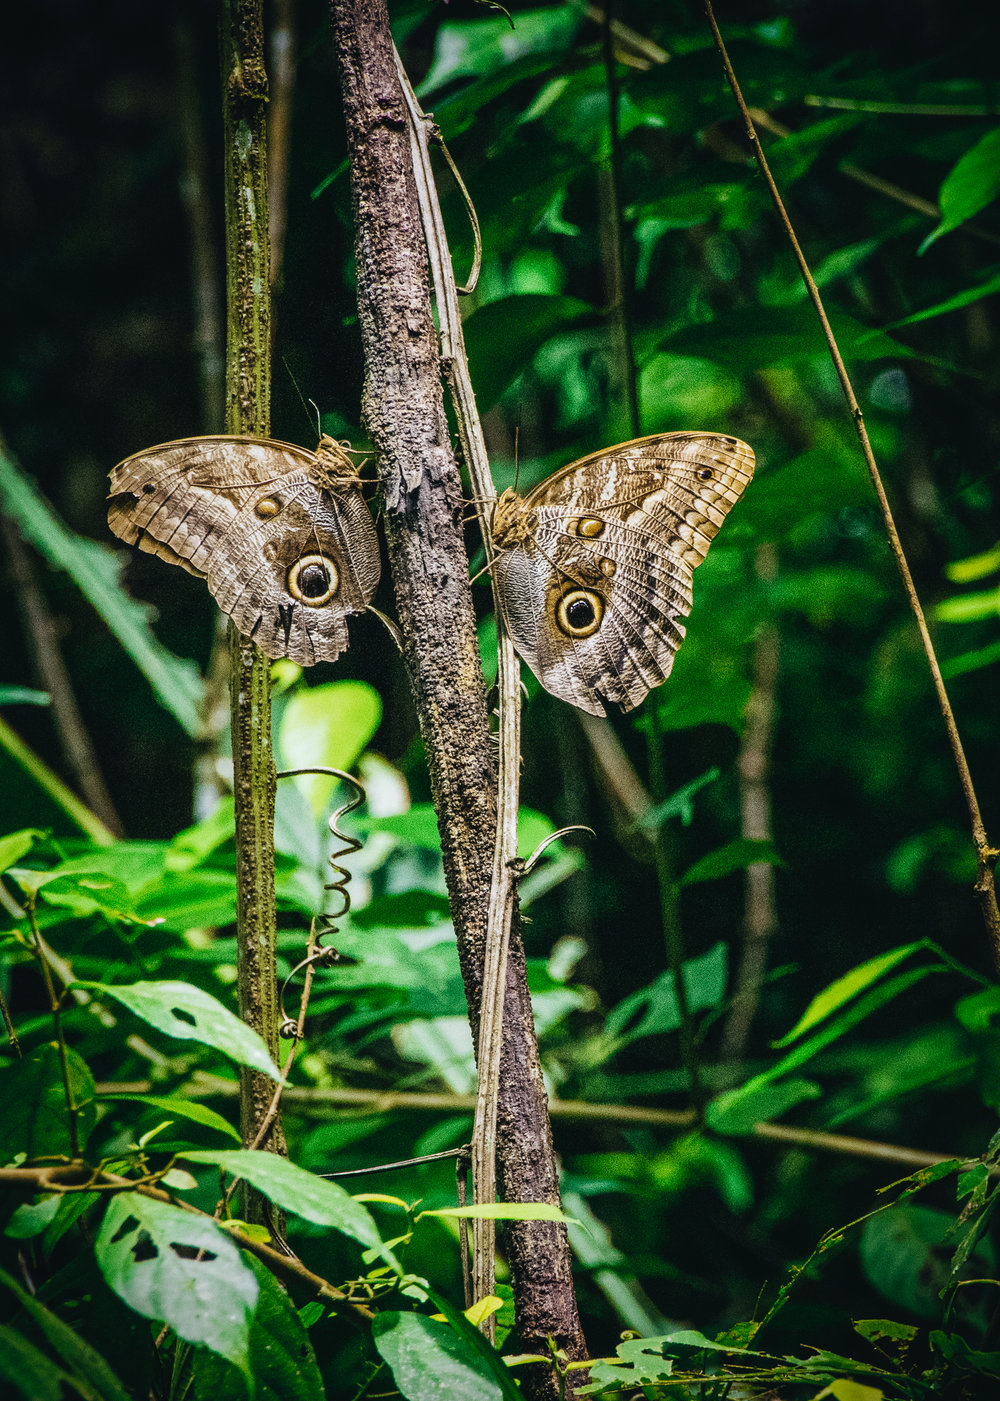 Two Owl Butterflies ( Caligo memnon ) rest in the jungles of Manuel Antonio National Park. We had come to see sloths... Without a lot of luck, that's a difficult thing to do with only an hour to spare and no guide.